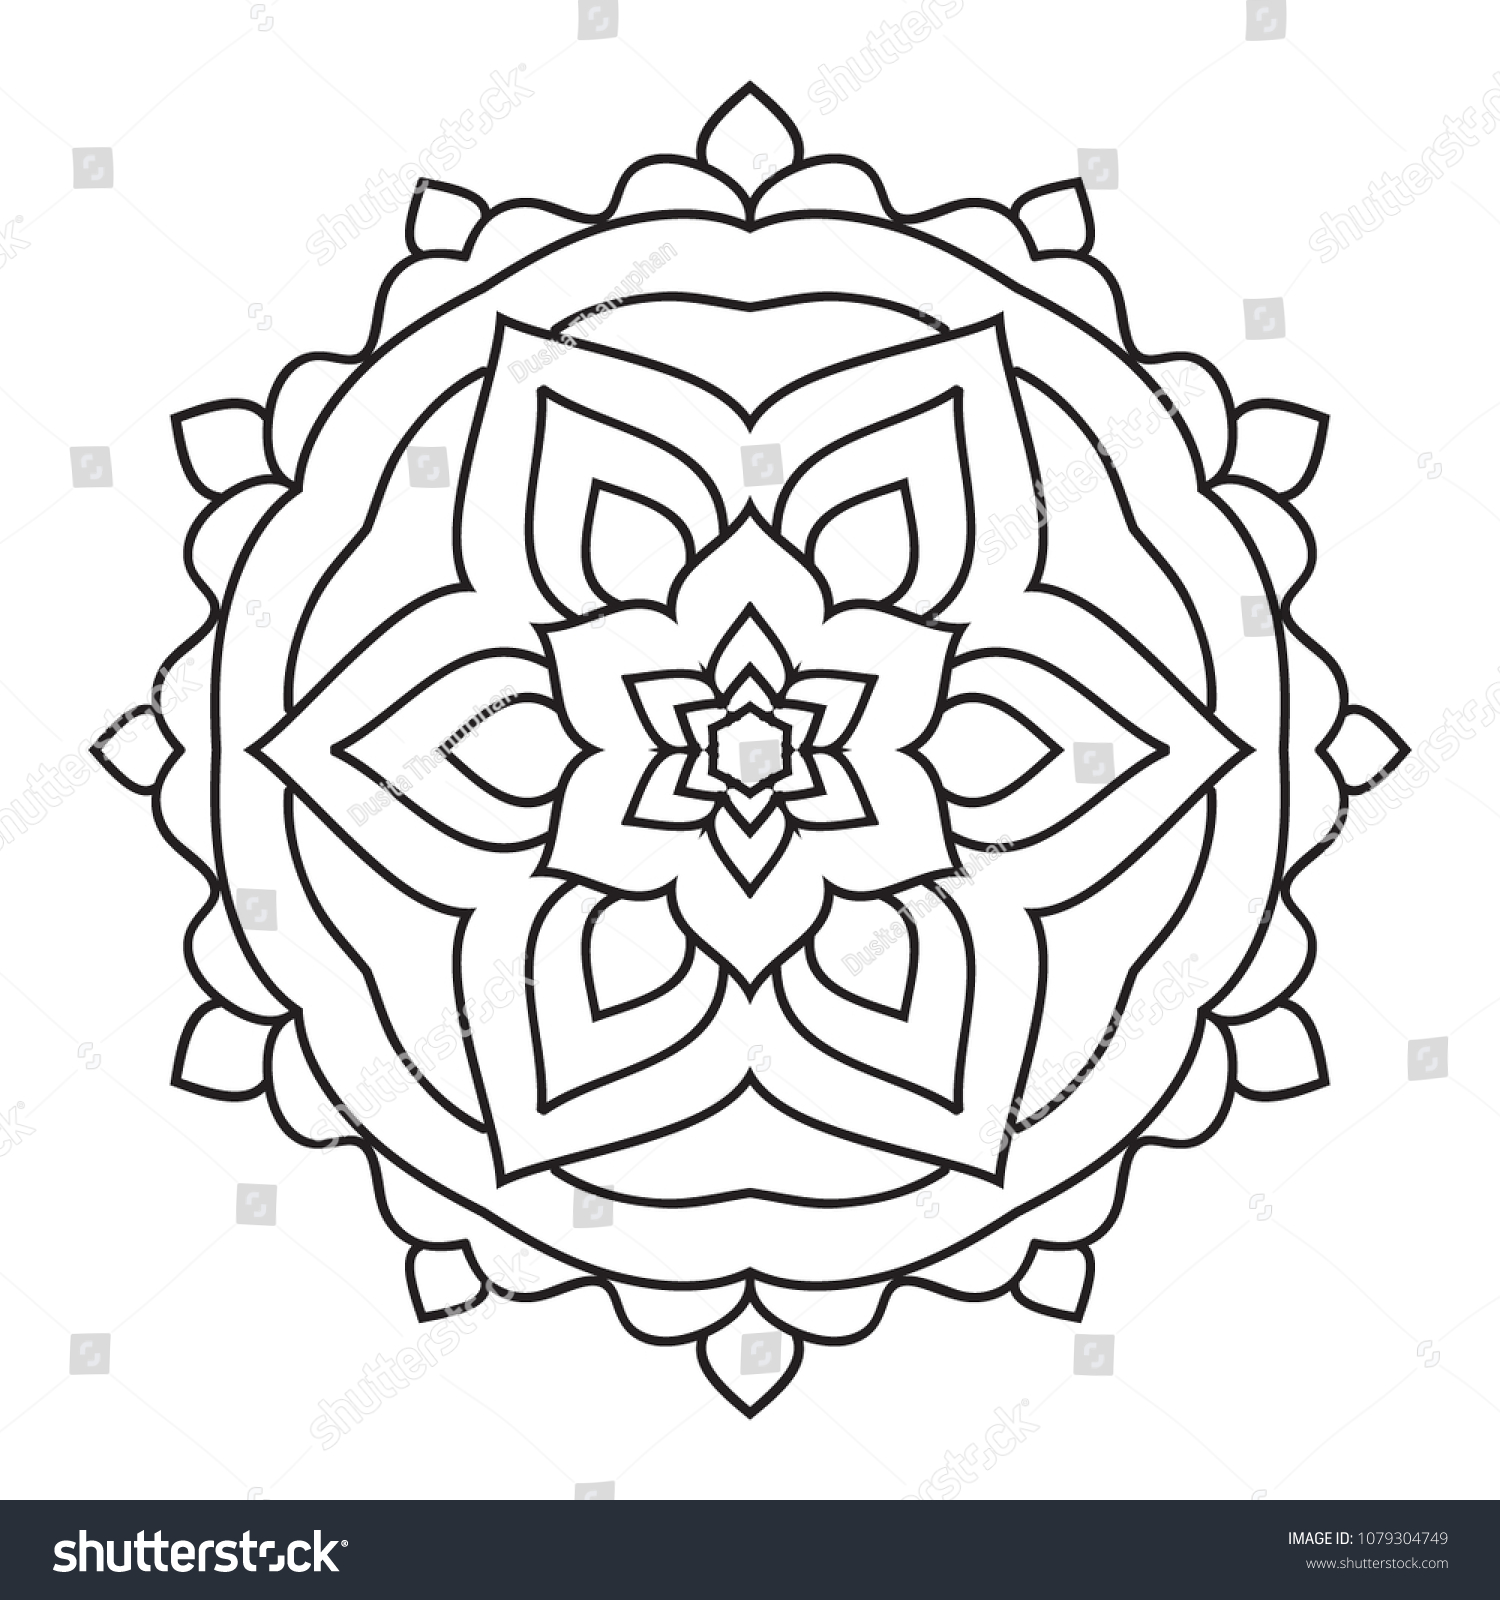 Easy Simple Mandala Coloring Pages Doodle Stock Illustration ...